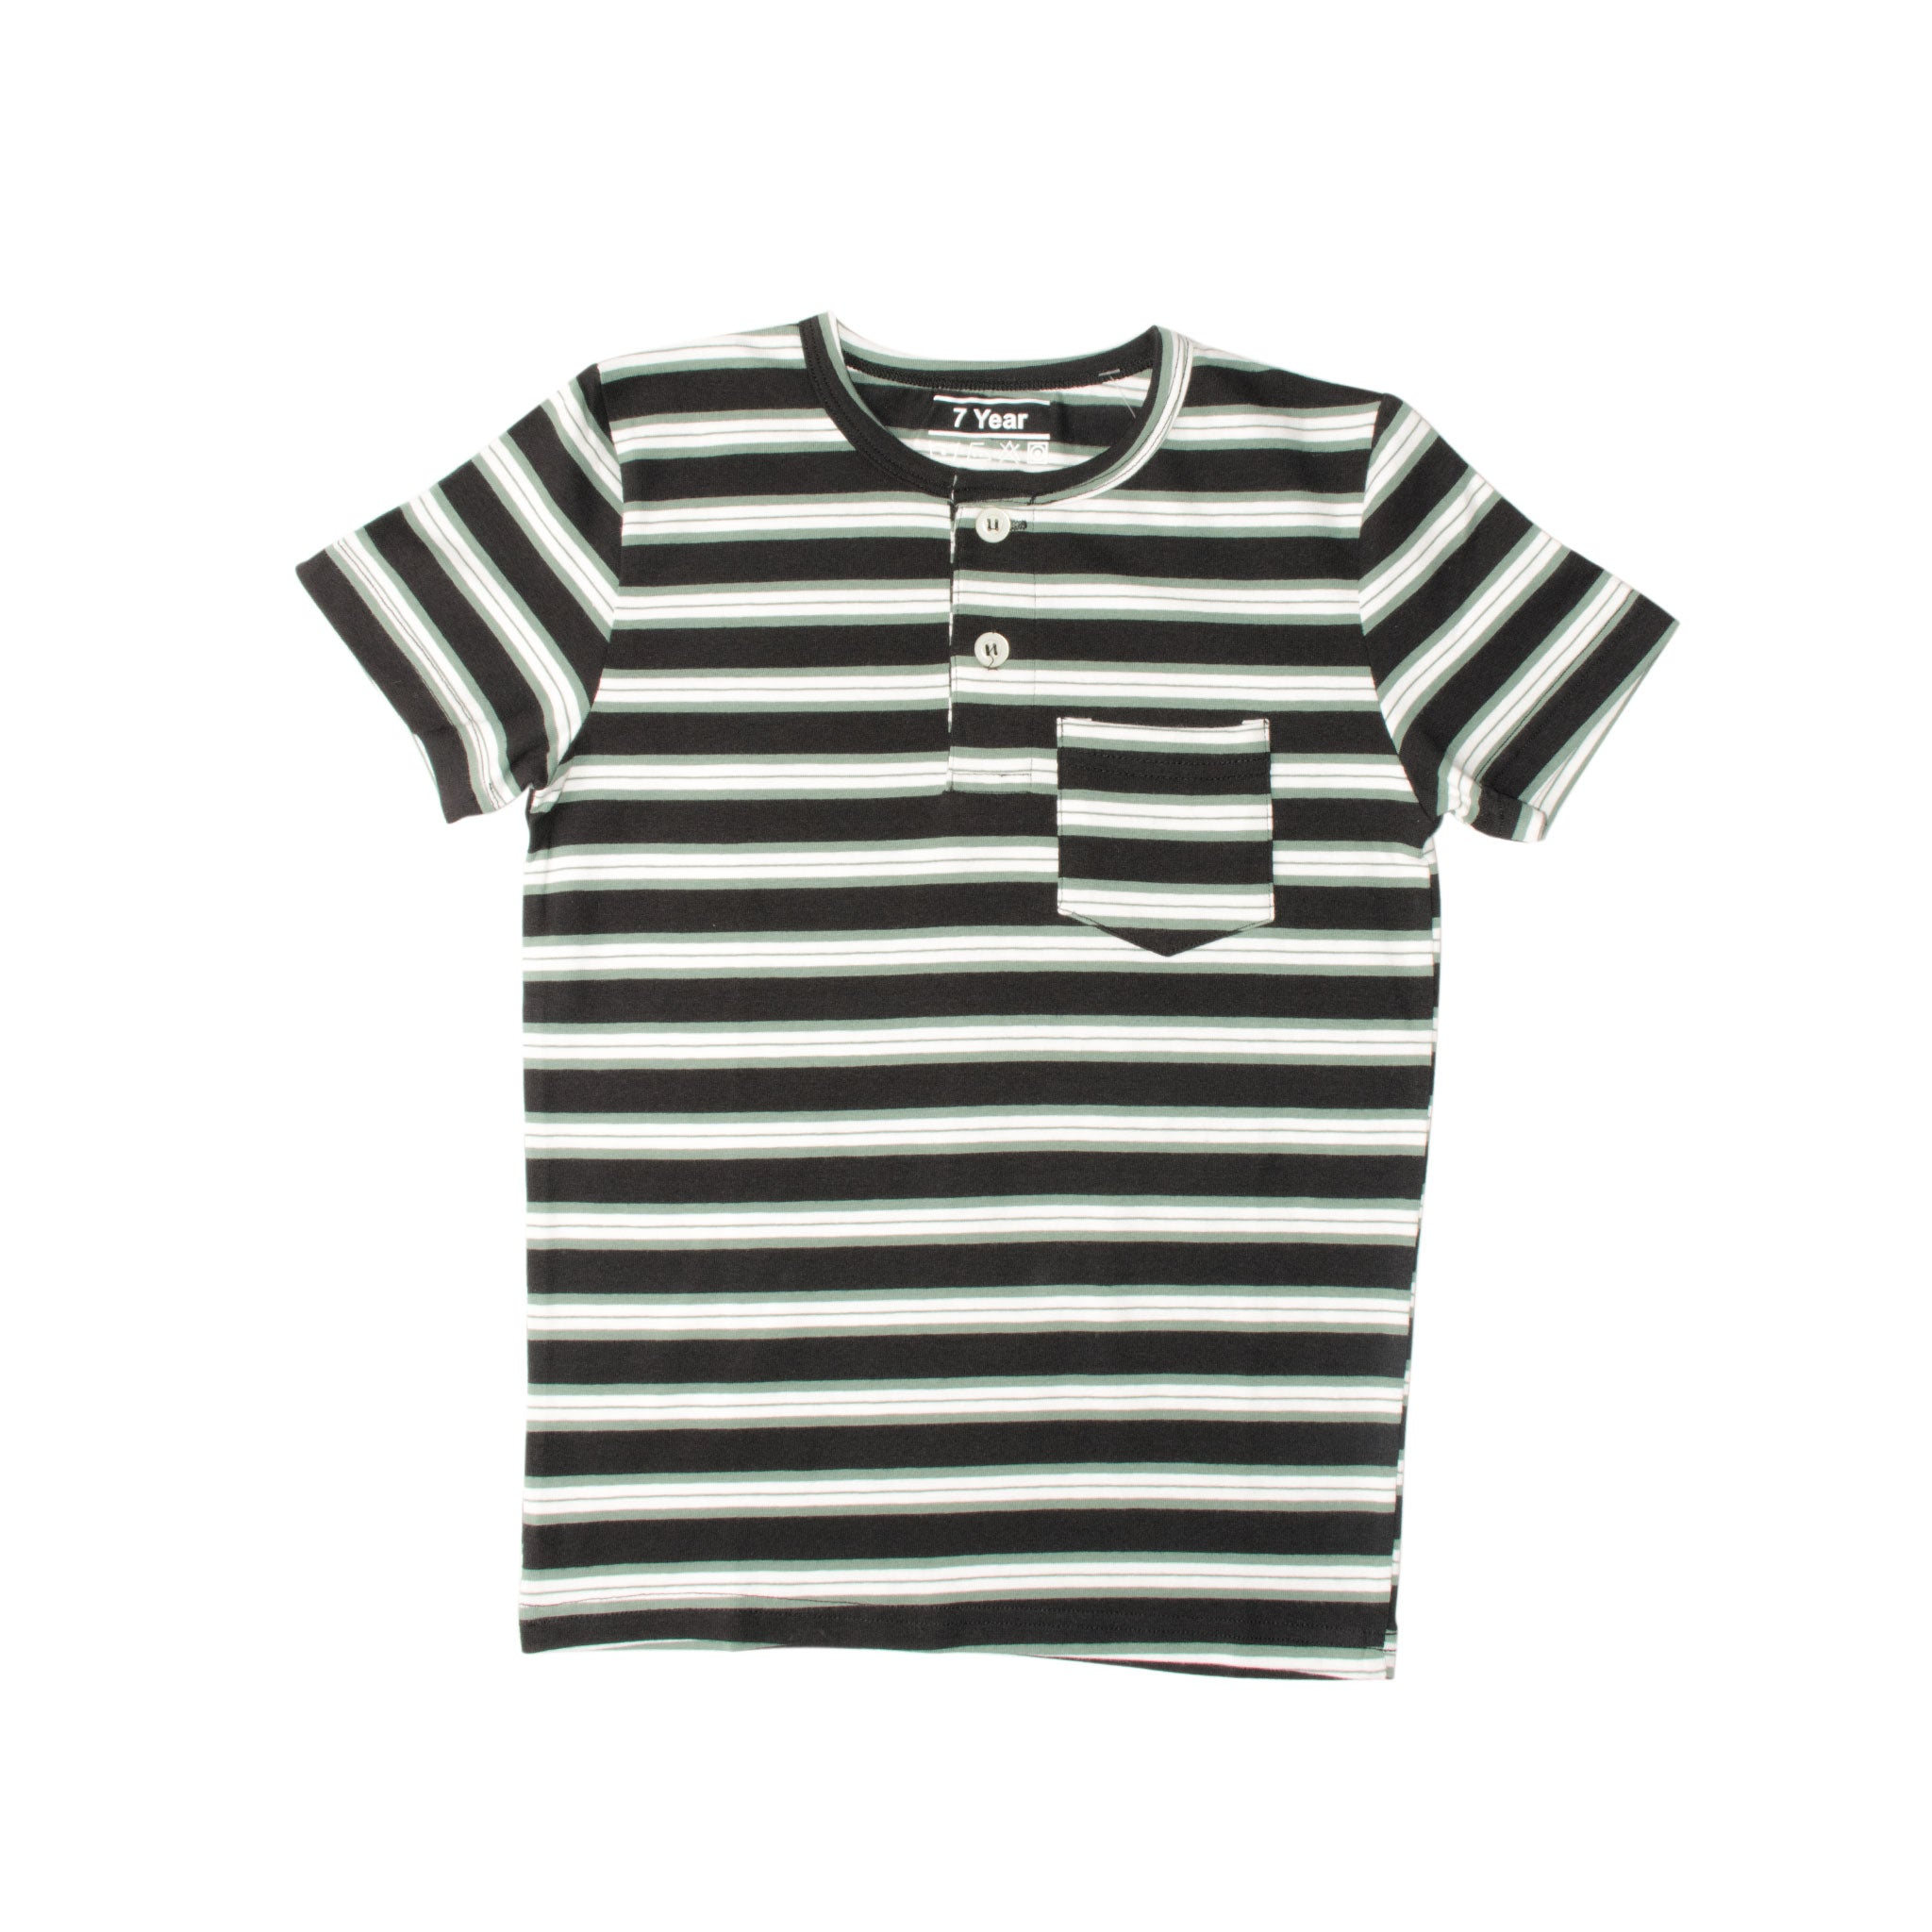 BOY'S S/S HENLEY-BLACK/GREEN/WHITE-SSSS20KB-1108 - Export Mall